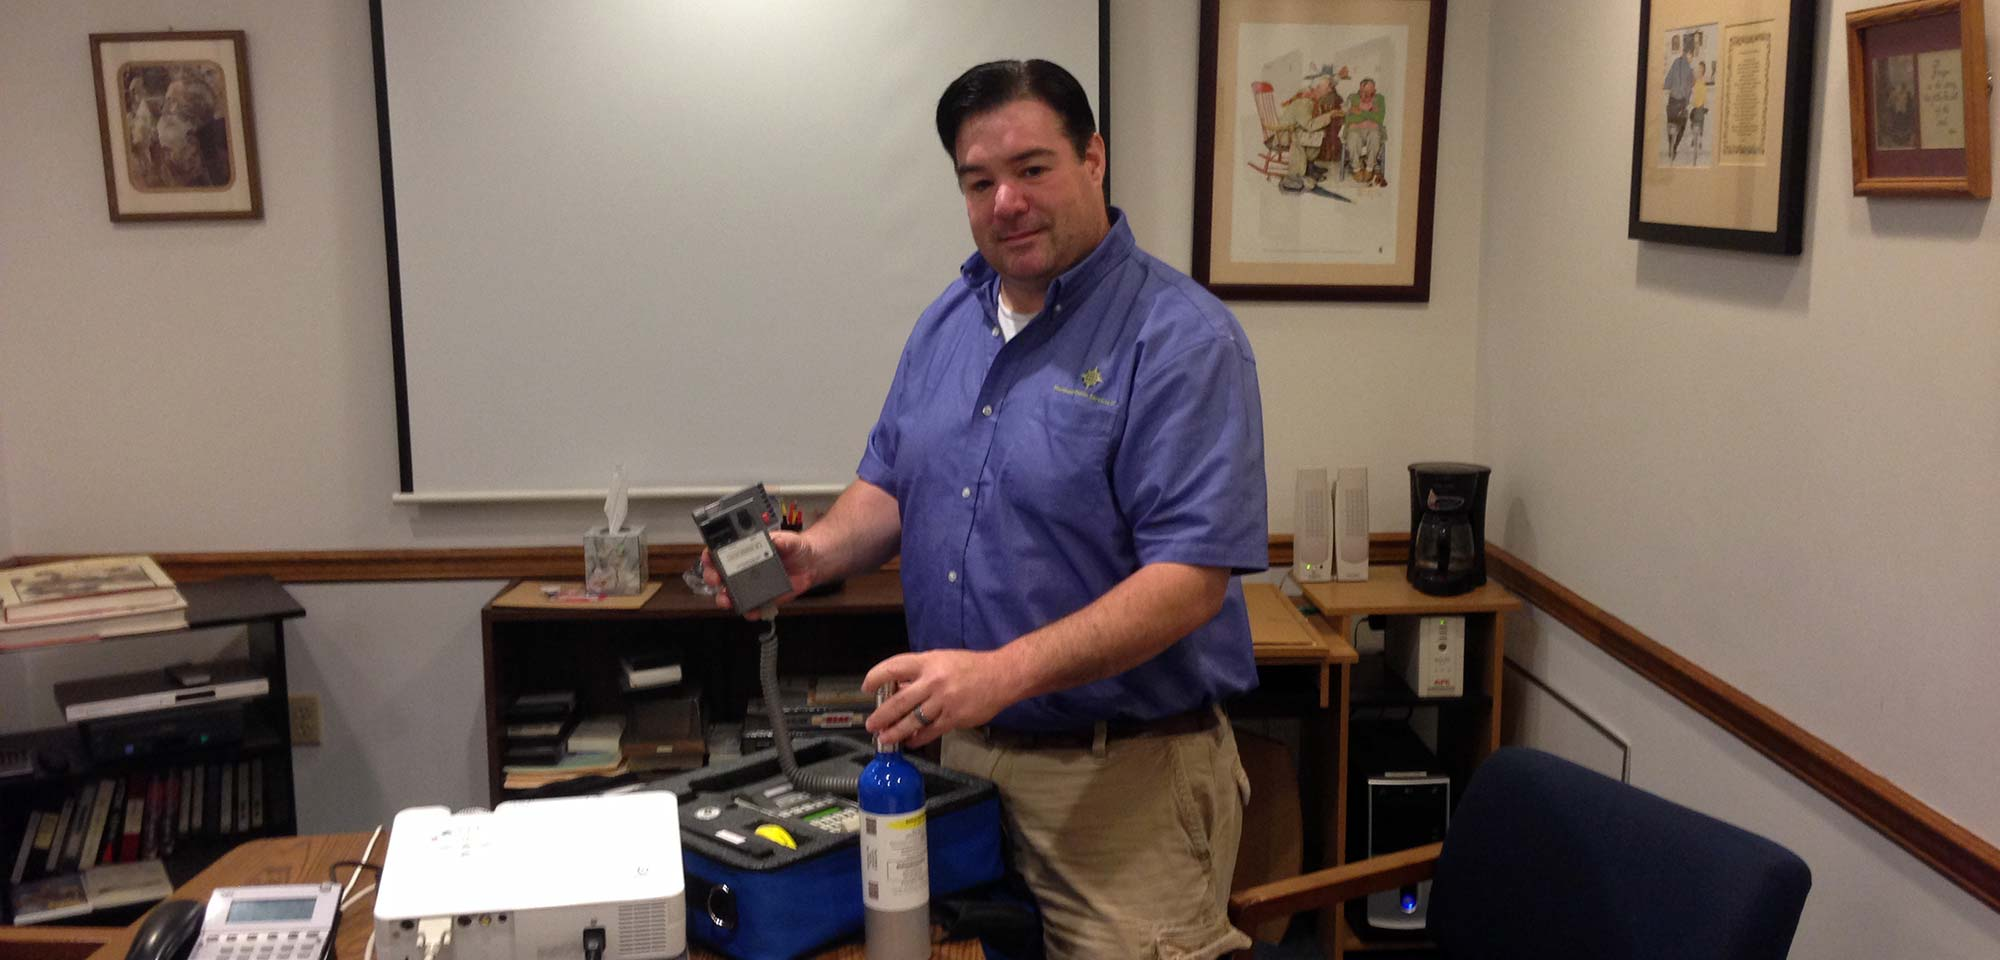 Keith R. Goselin is a Certified Calibration Technician on the RBT IV